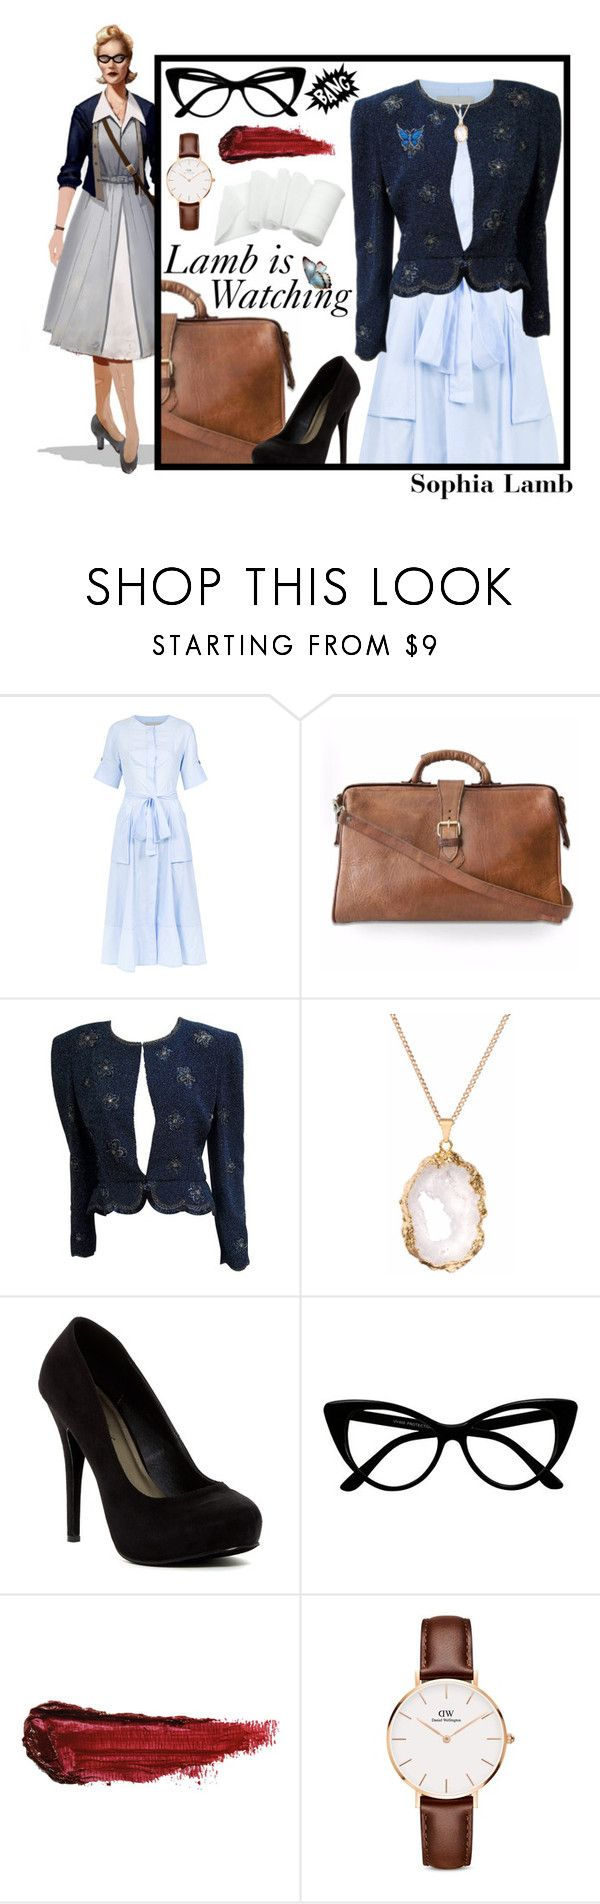 """Dr. Sophia Lamb (BioShock 2)"" by katnovella ❤ liked on Polyvore featuring Sissa, Michael Antonio, By Terry and Daniel Wellington"